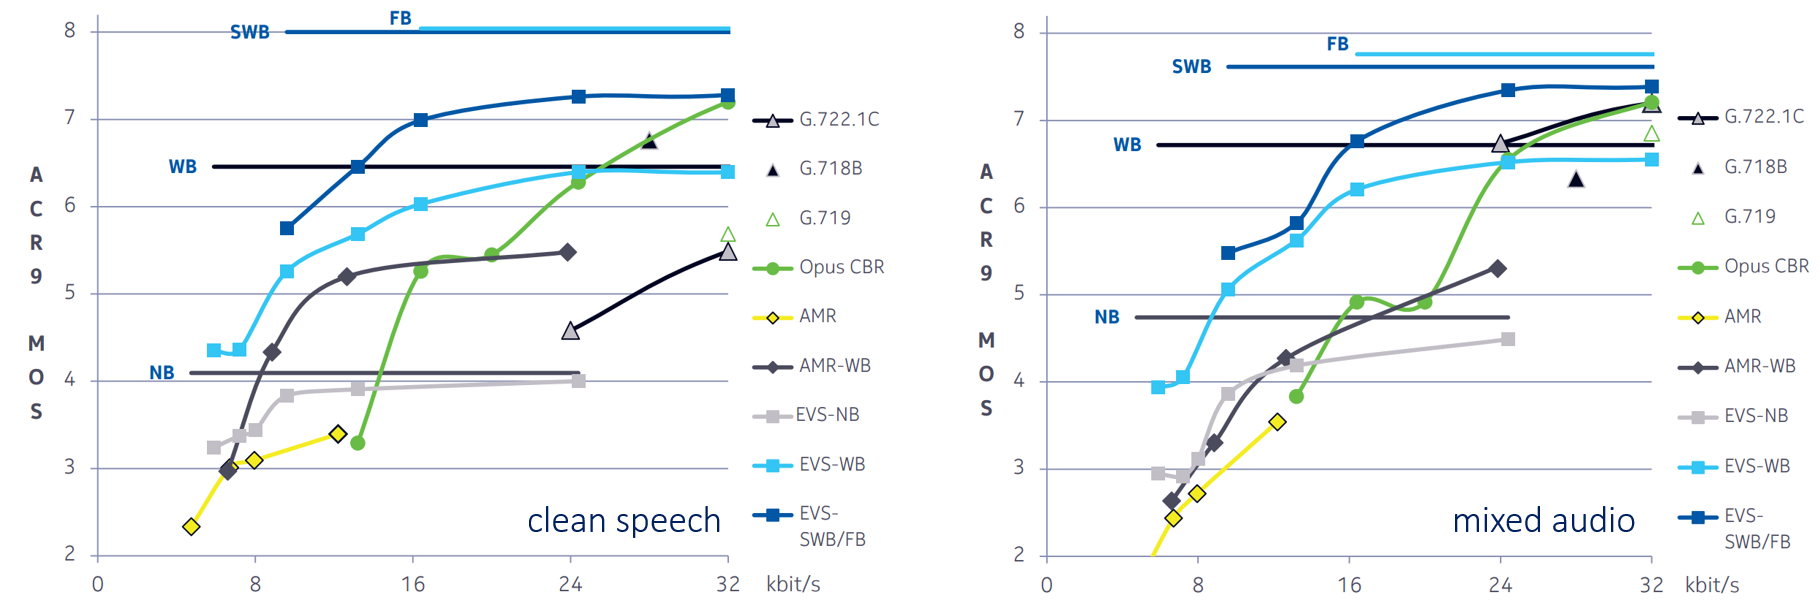 blog-speech-left-audio-right-evs-mos.png